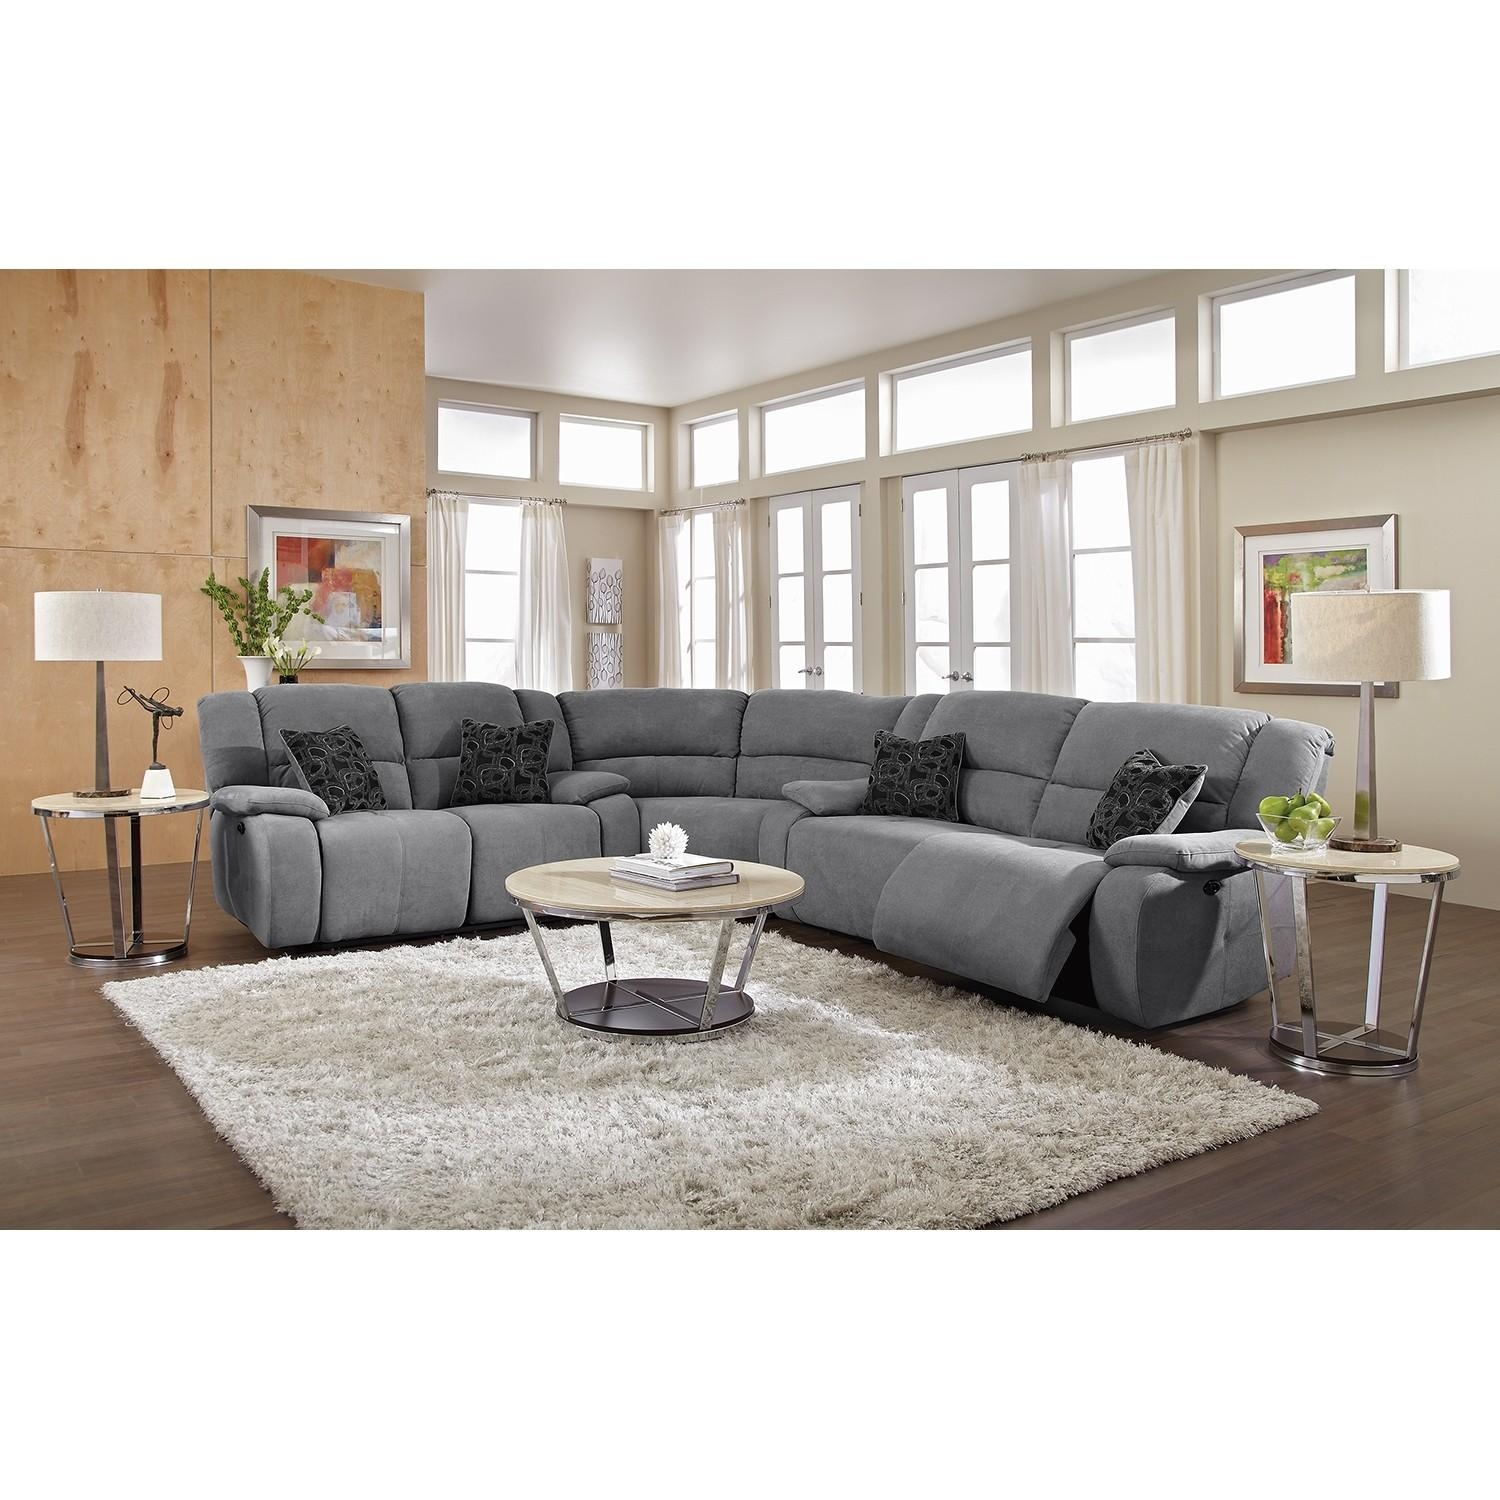 Sofas : Wonderful Black Sectional Couch Grey Sectional Couch Within Gray Leather Sectional Sofas (Image 19 of 21)